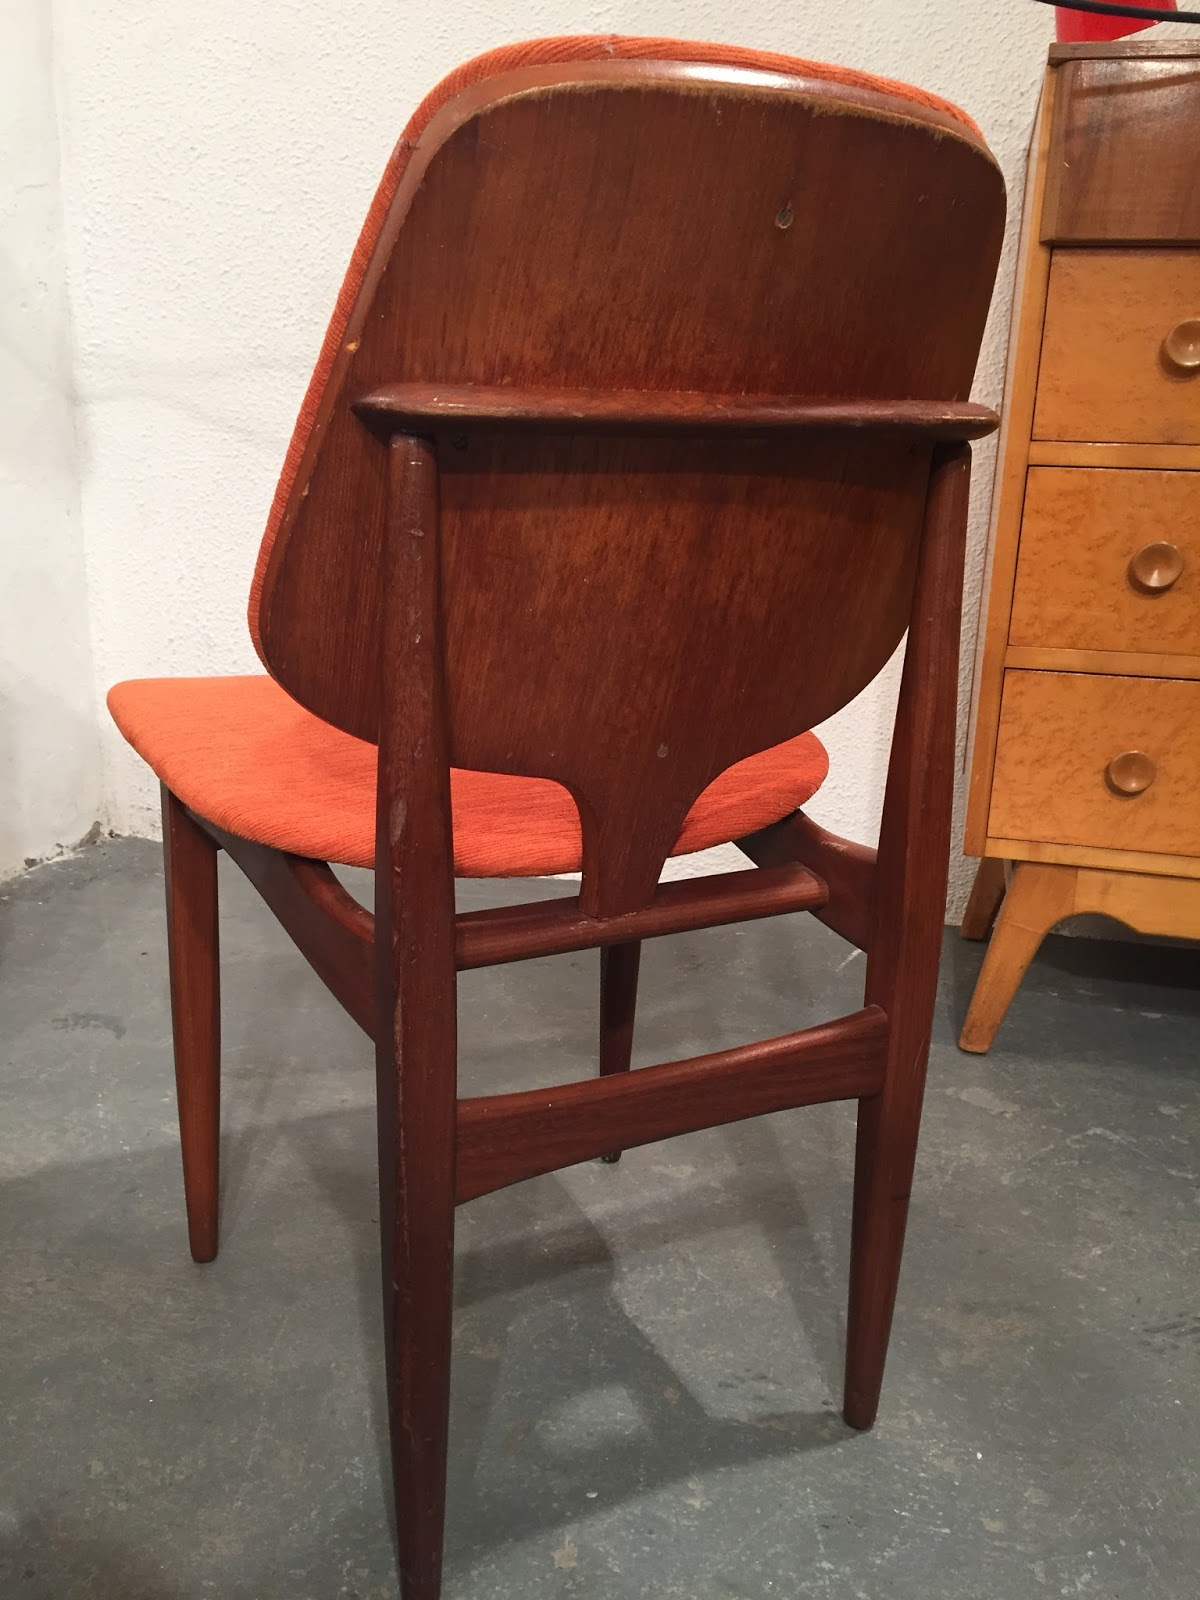 retro dining chairs ireland on wheels for ocd vintage furniture